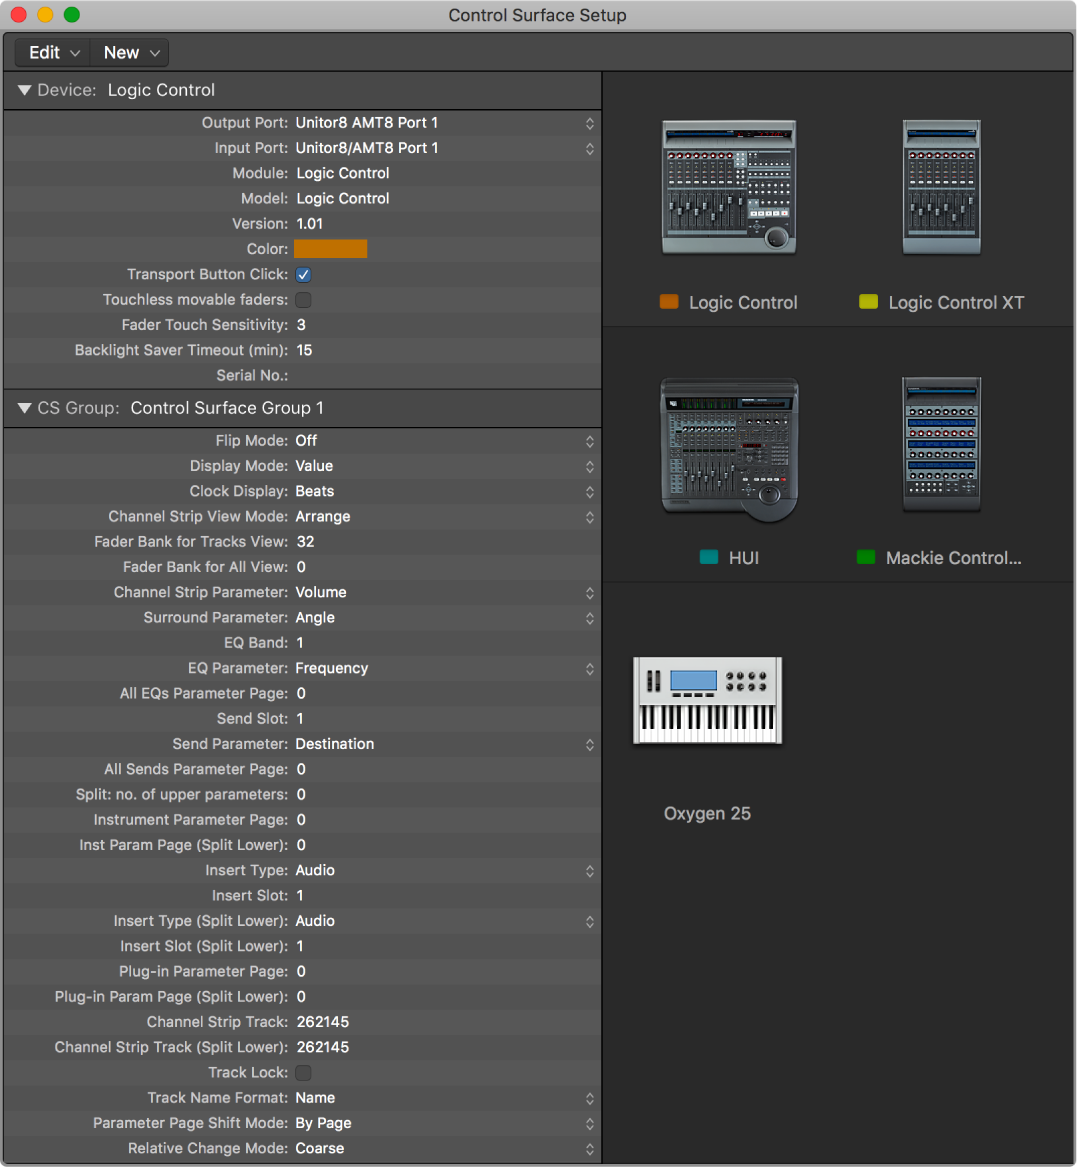 Logic Pro Control Surface Setup window with multiple control surfaces.